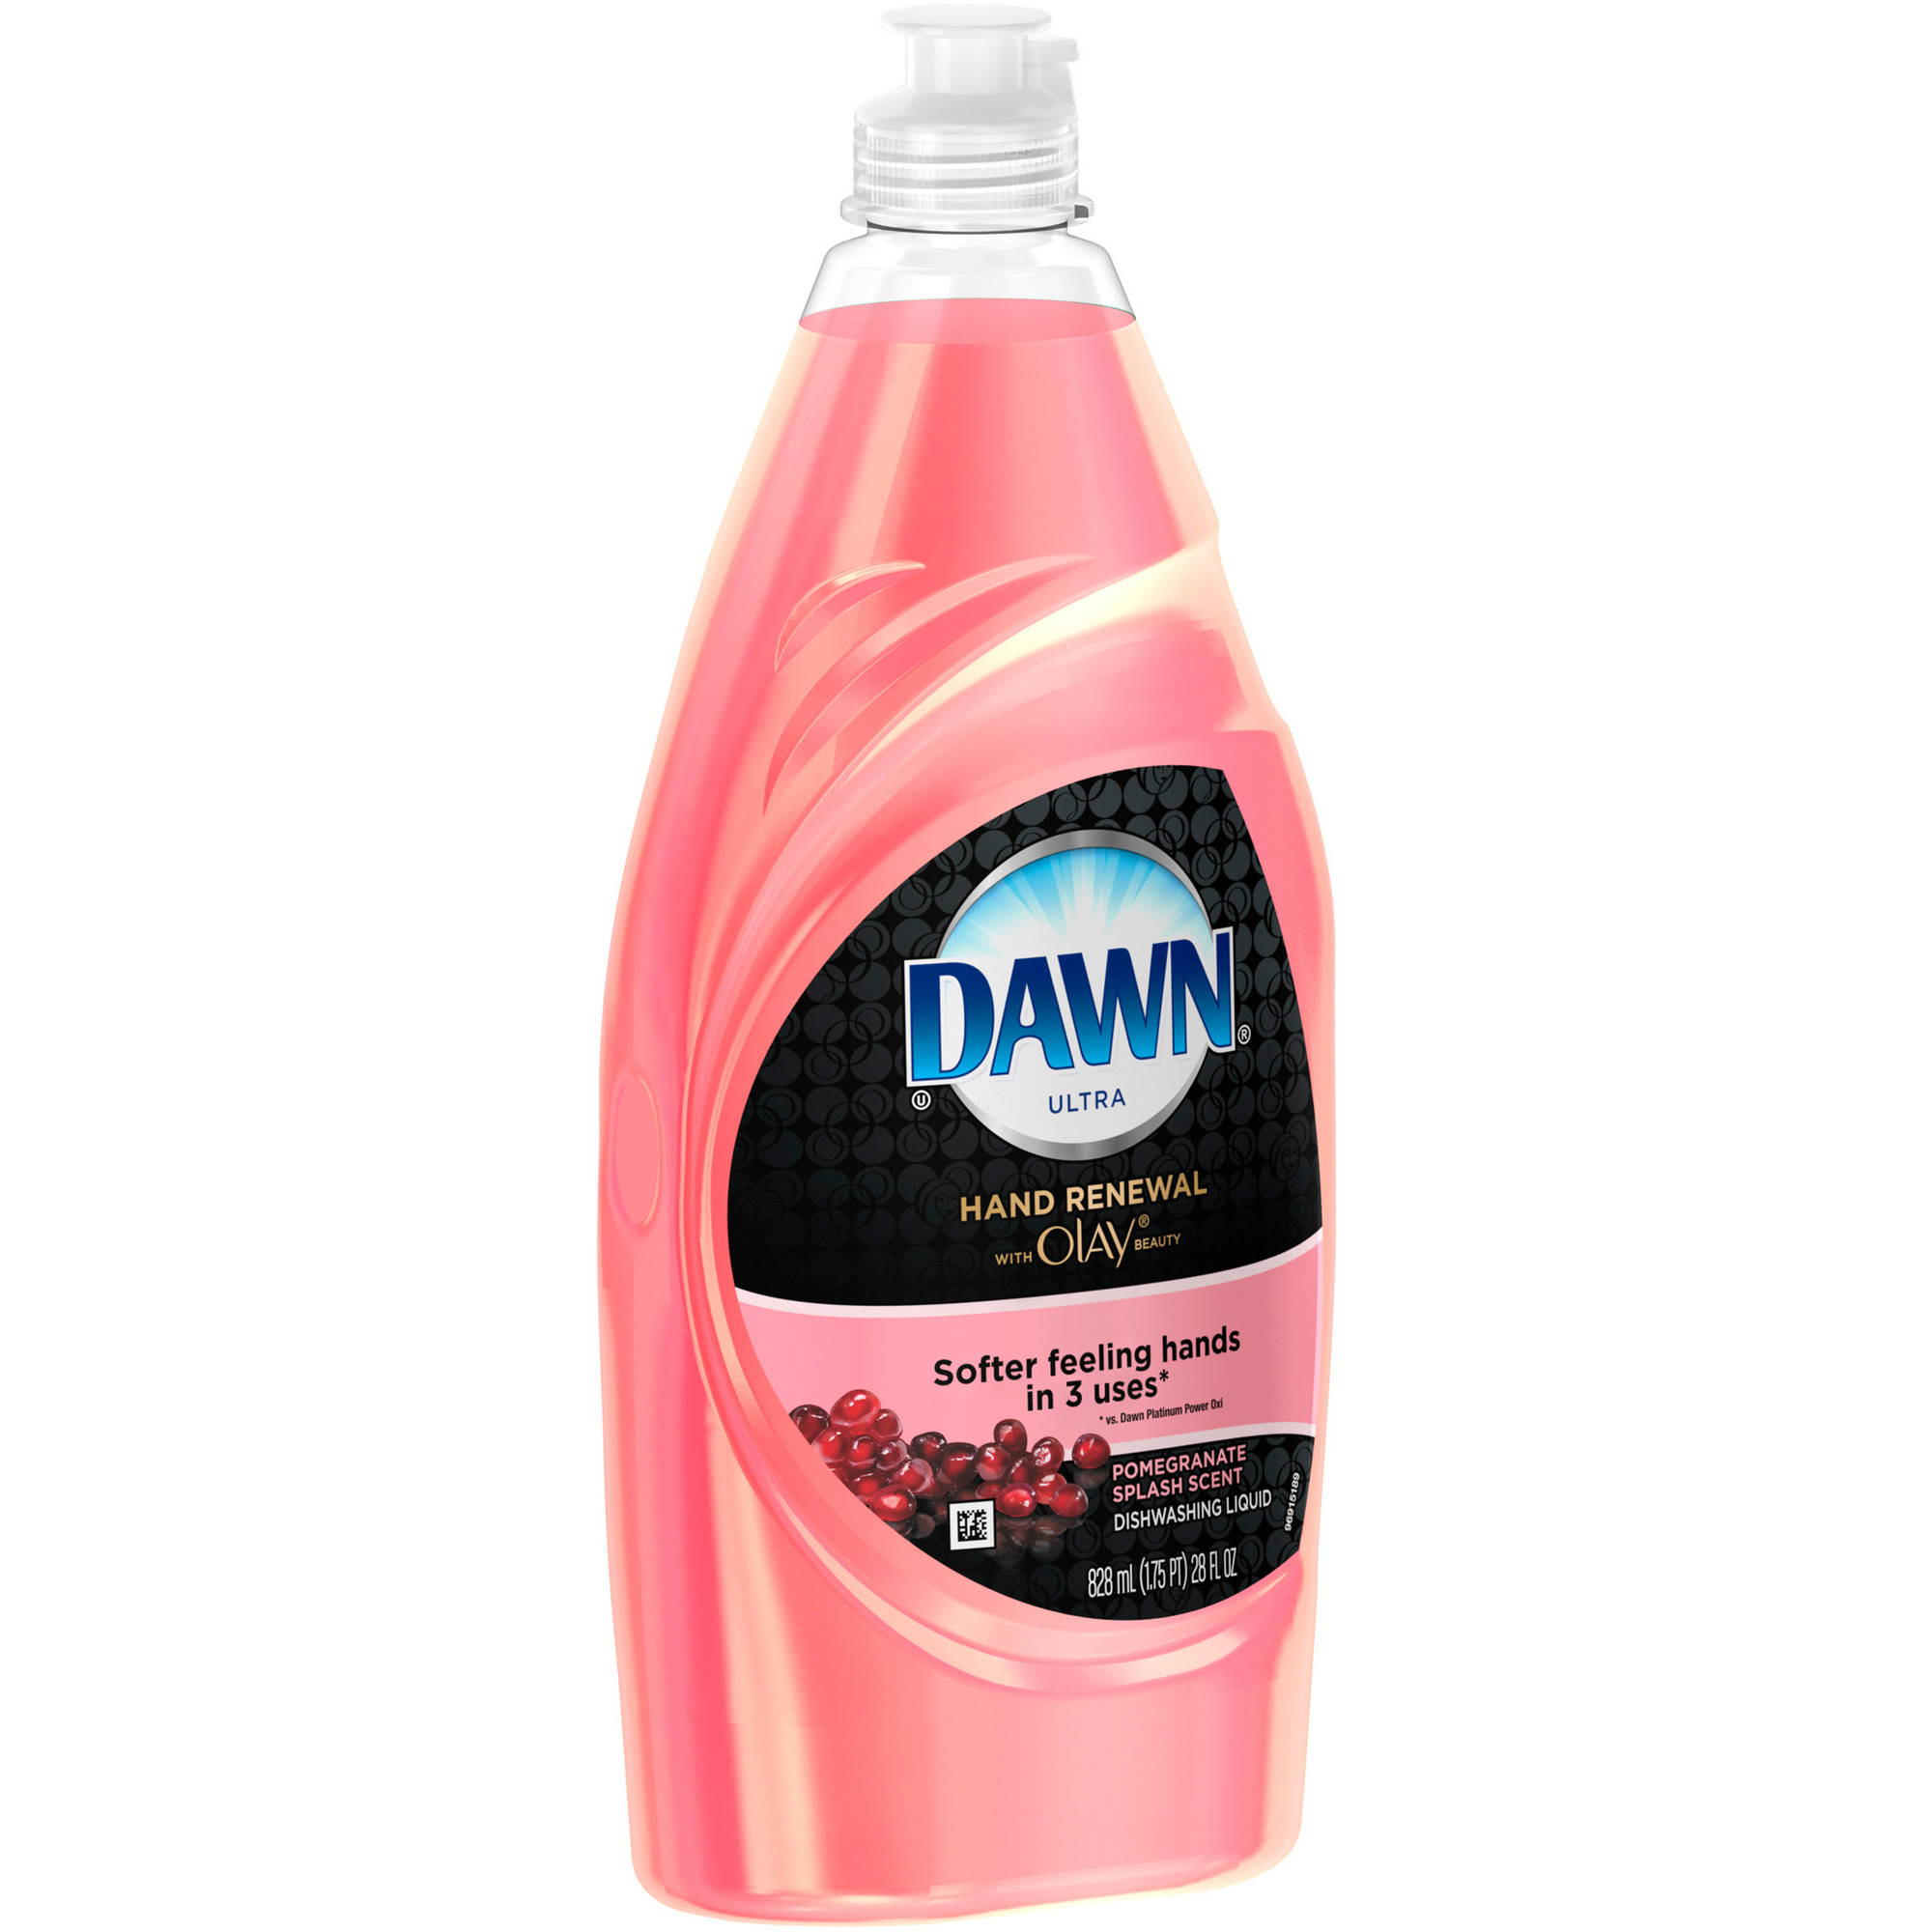 Dawn Hand Renewal with Olay Dishwashing Liquid, Pomegranate Splash, 28 fl oz